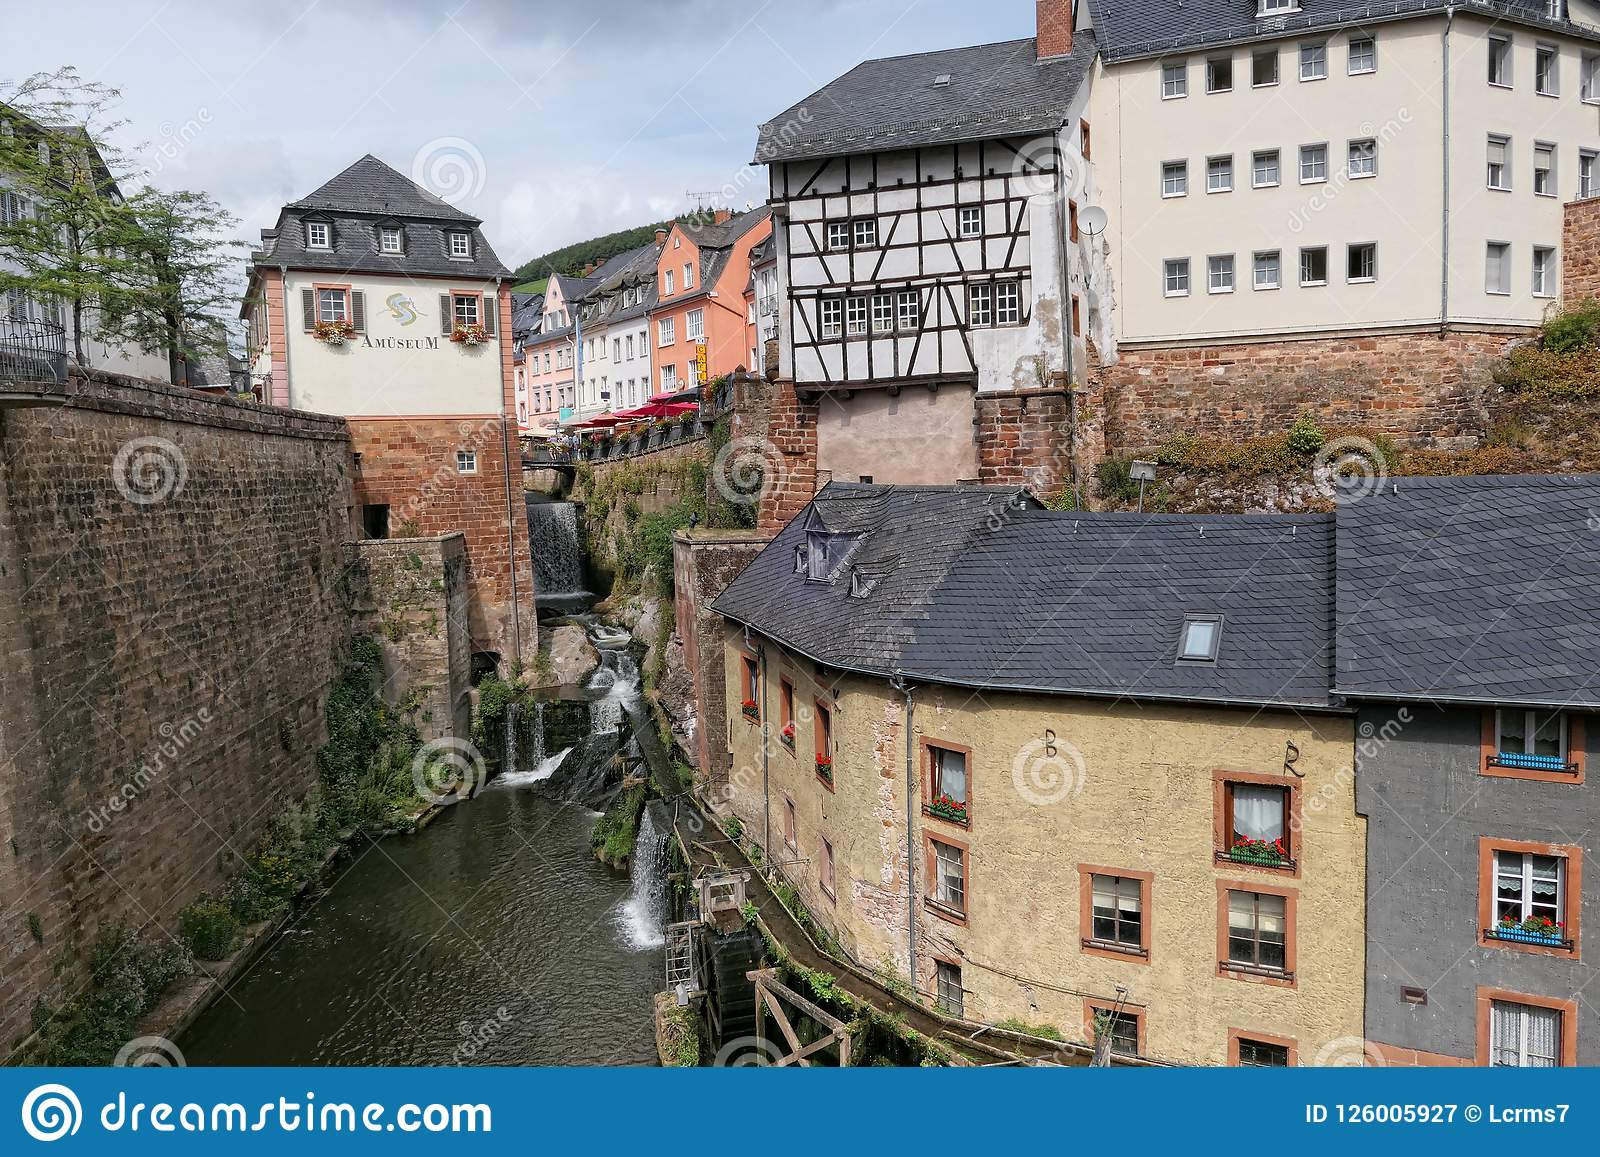 Cityscape of Saarburg with its historical old town part and Leuk River flowing into the city towards the ancient mills.